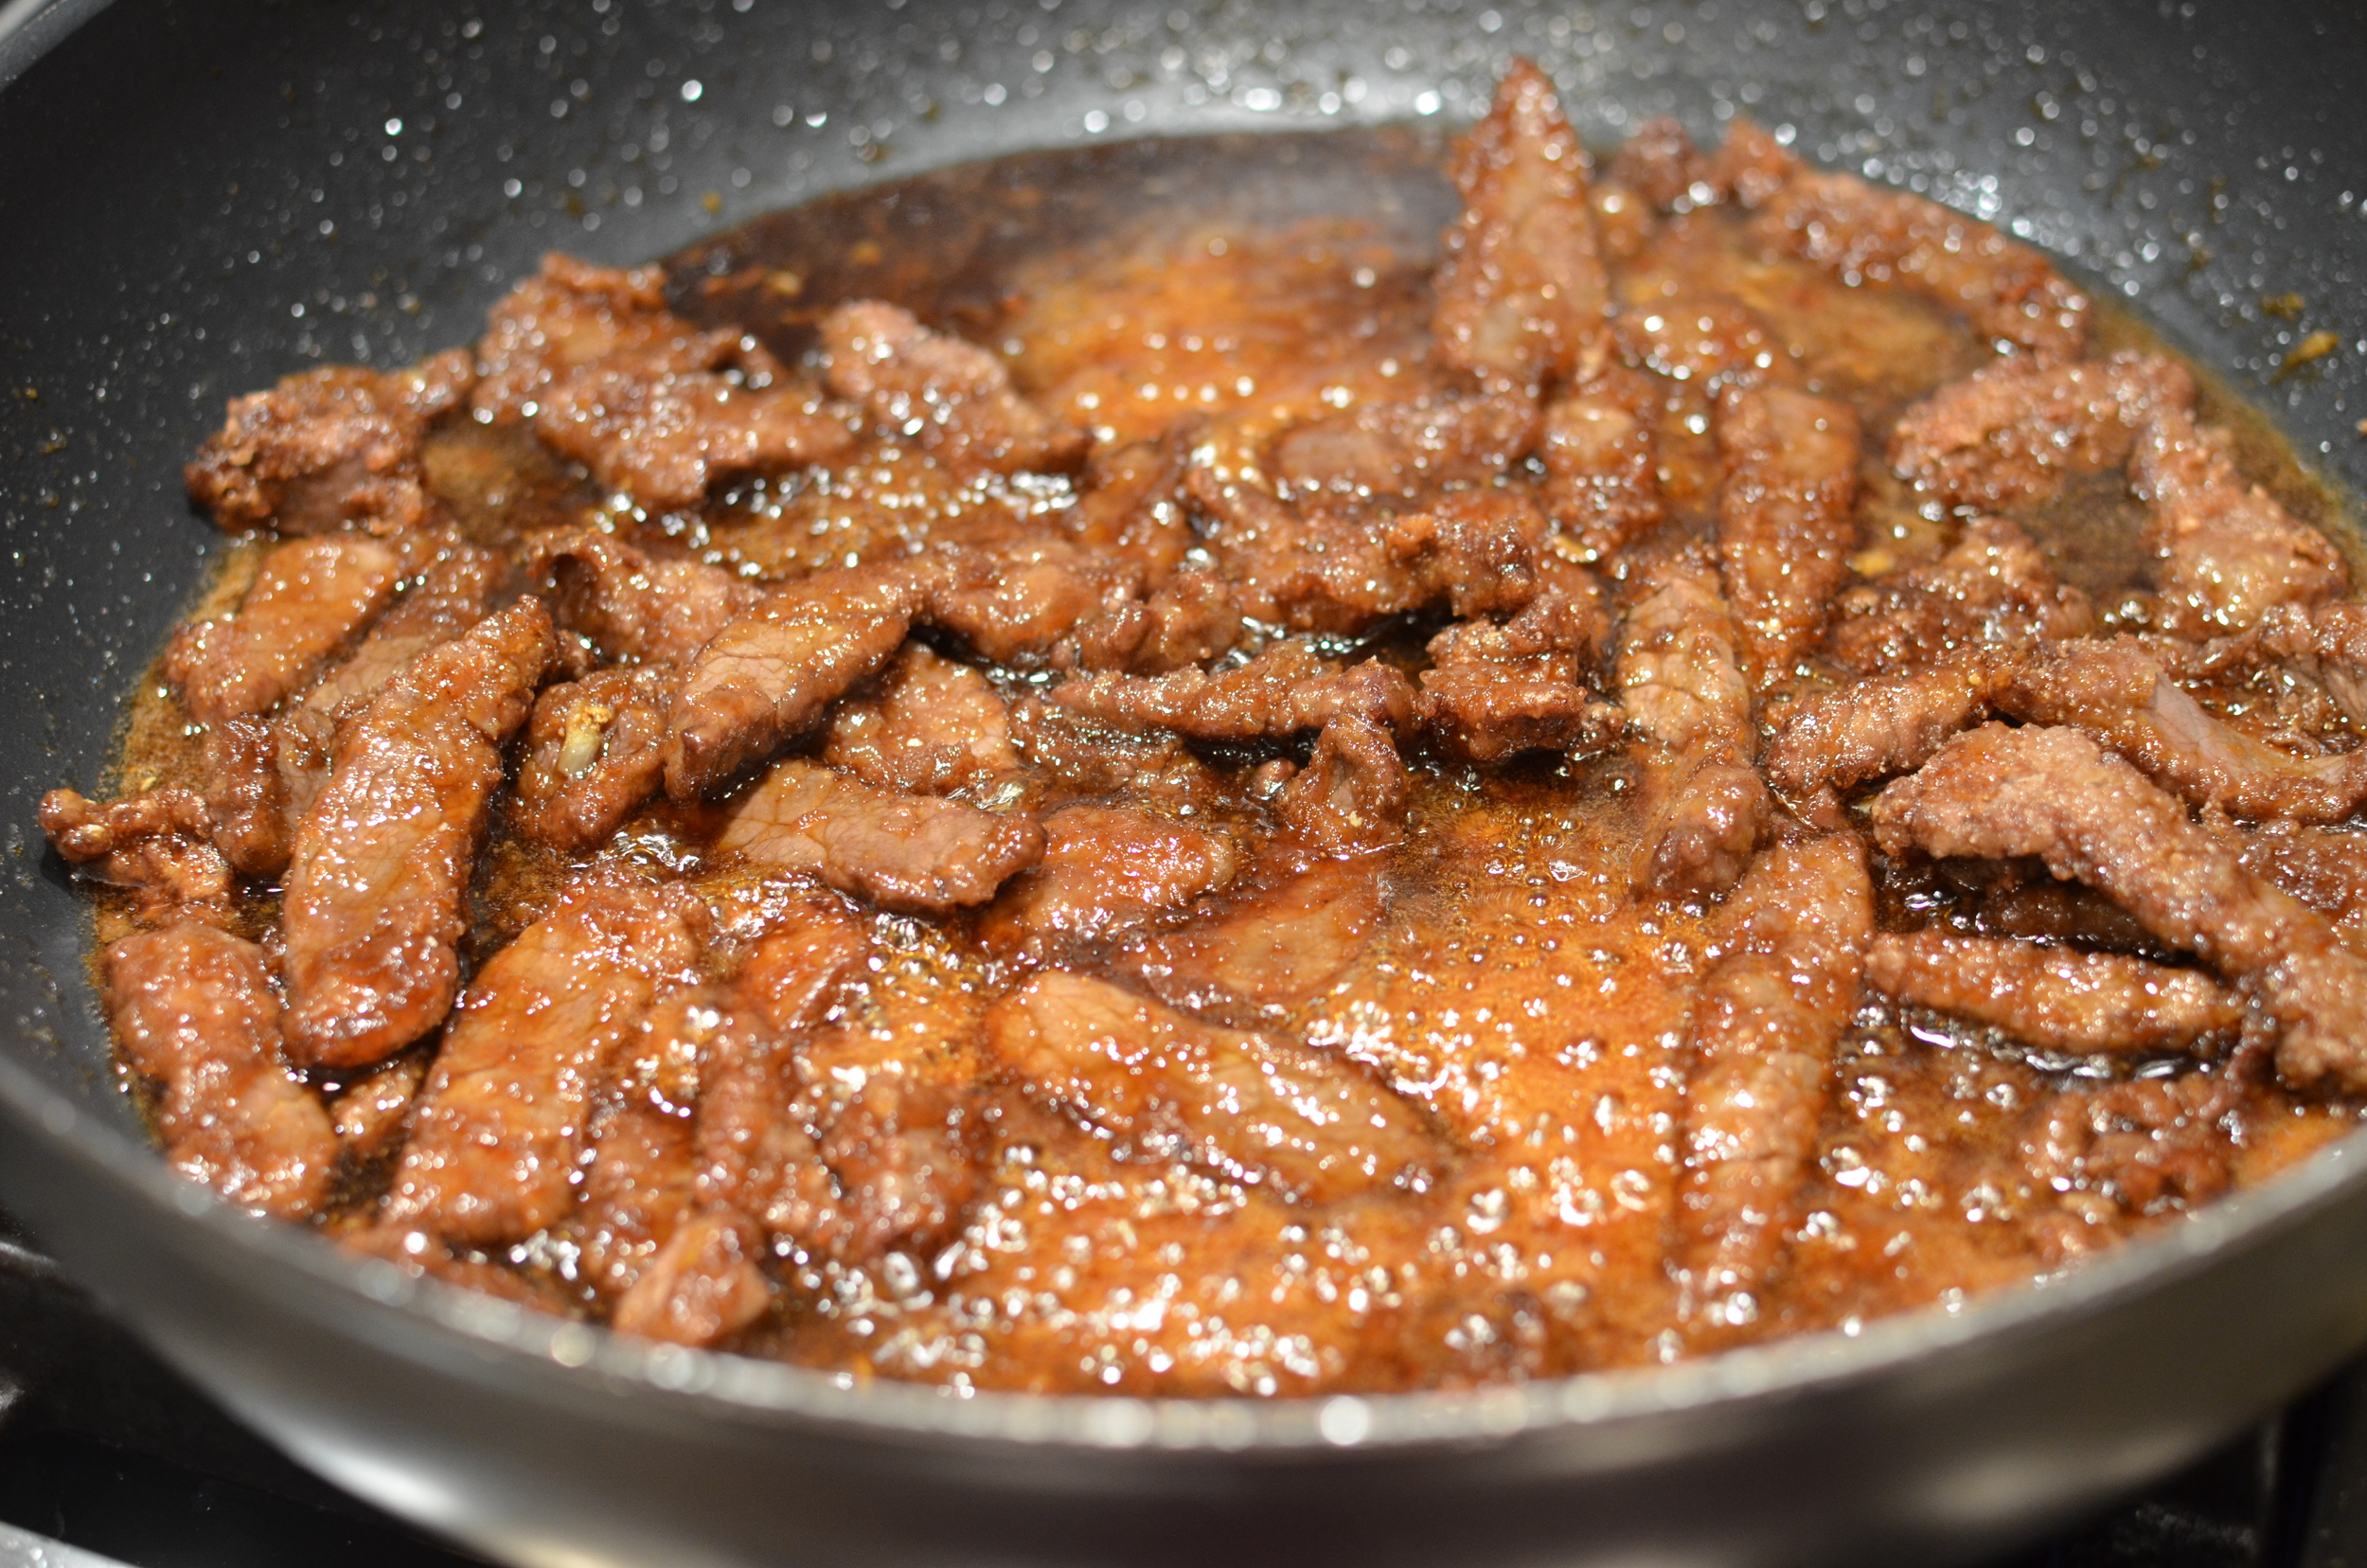 Return sauce to heat; add steak strips and stir for several minutes until cooked through.